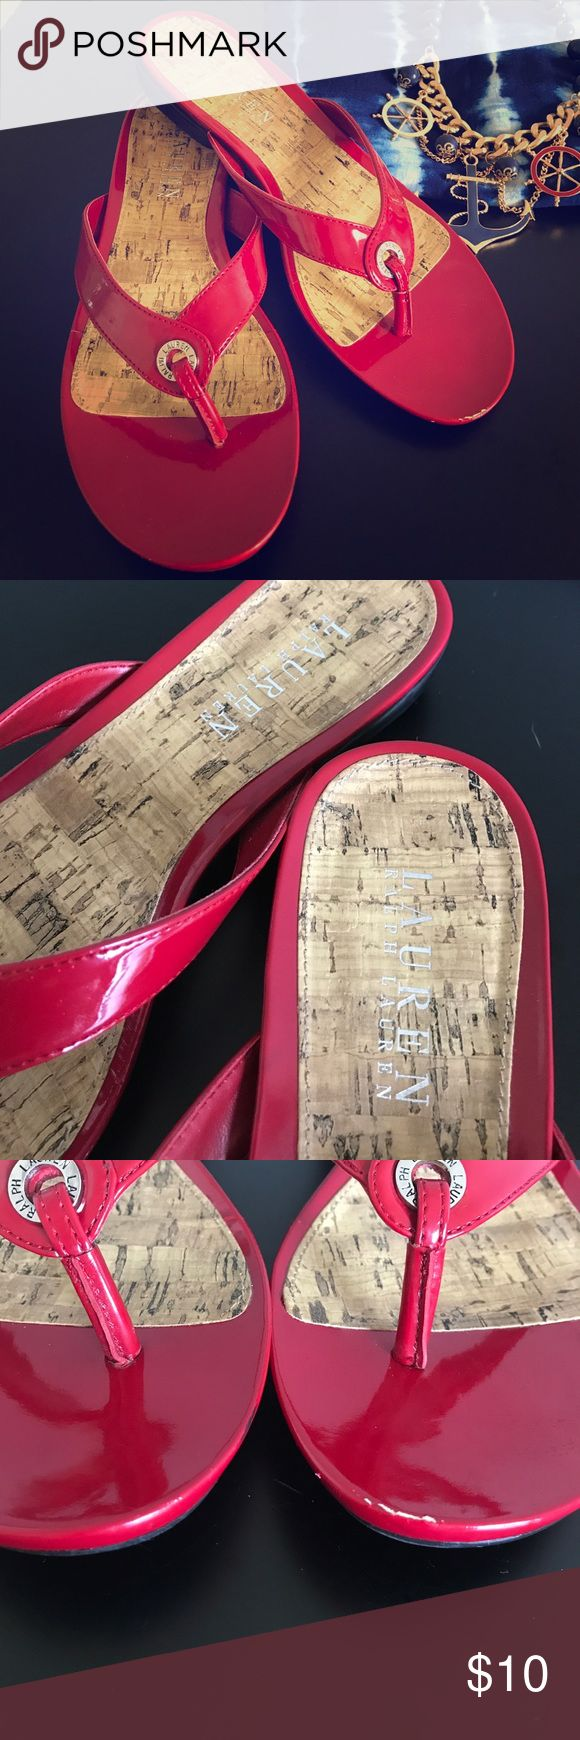 Ruby Red Flip Flops Very well made & perfect for summer & 4th of July. Size tag says 9, but they would fit an 8-8 1/2 best, so listing them as such. Cork footbed, non-slip black rubber soul. These are in good condition w/ tons of life left, but they do have a couple of minor flaws & priced accordingly. Please see all pictures. I only wore these a handful of times & wouldn't sell if they fit my true to size 9 foot because they are very comfortable. Lauren Ralph Lauren Shoes Sandals